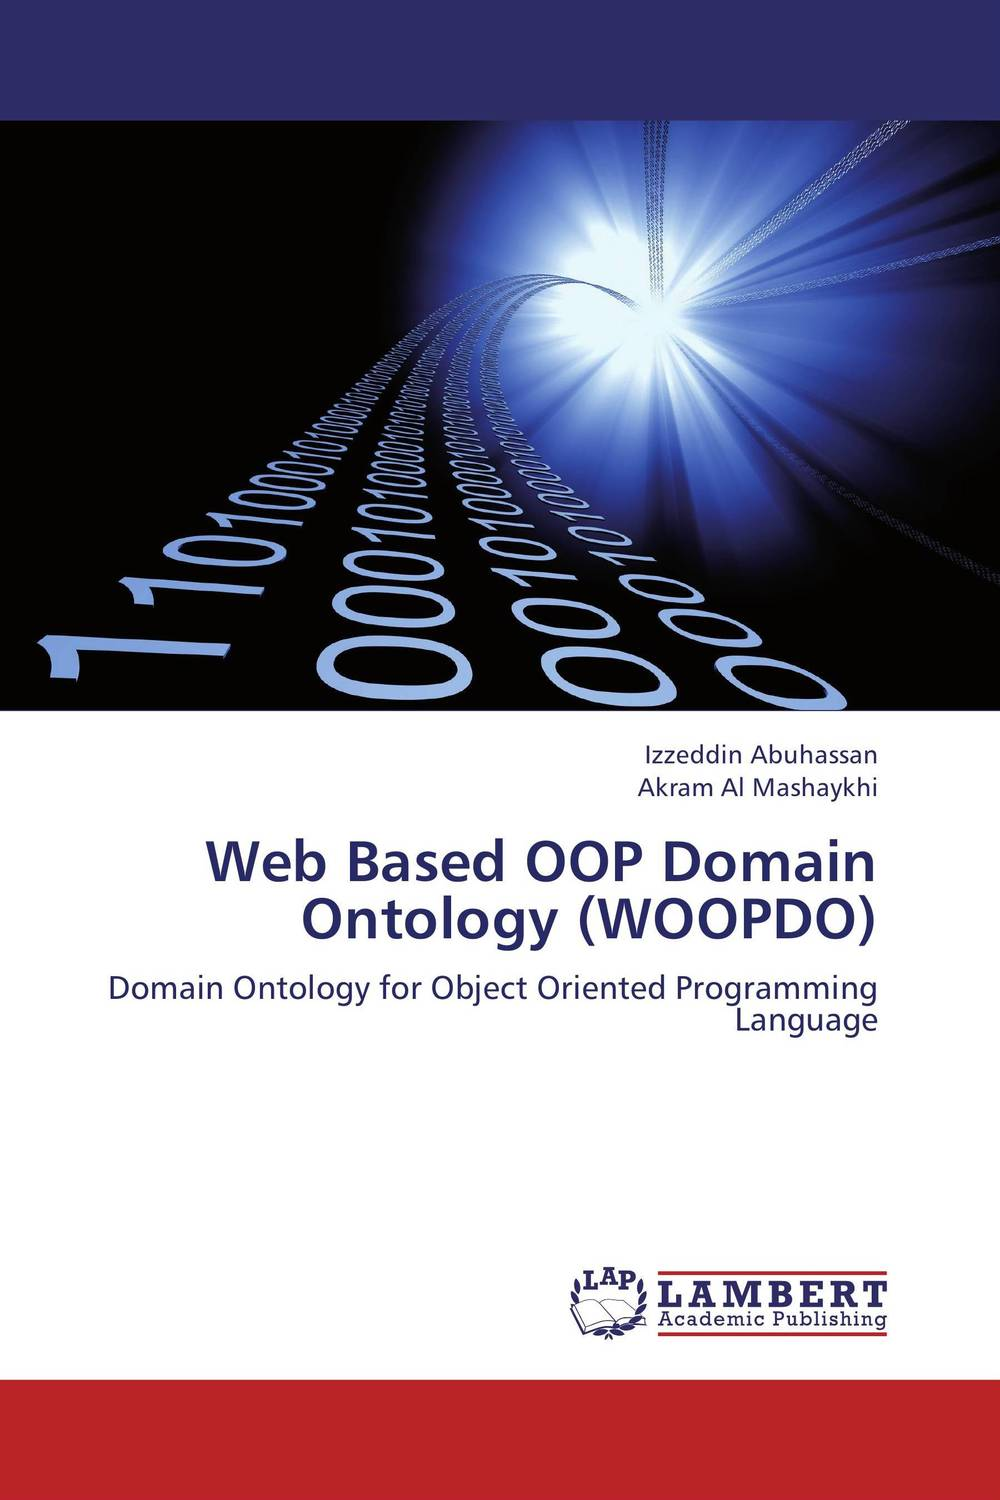 Web Based OOP Domain Ontology (WOOPDO) clustering information entities based on statistical methods